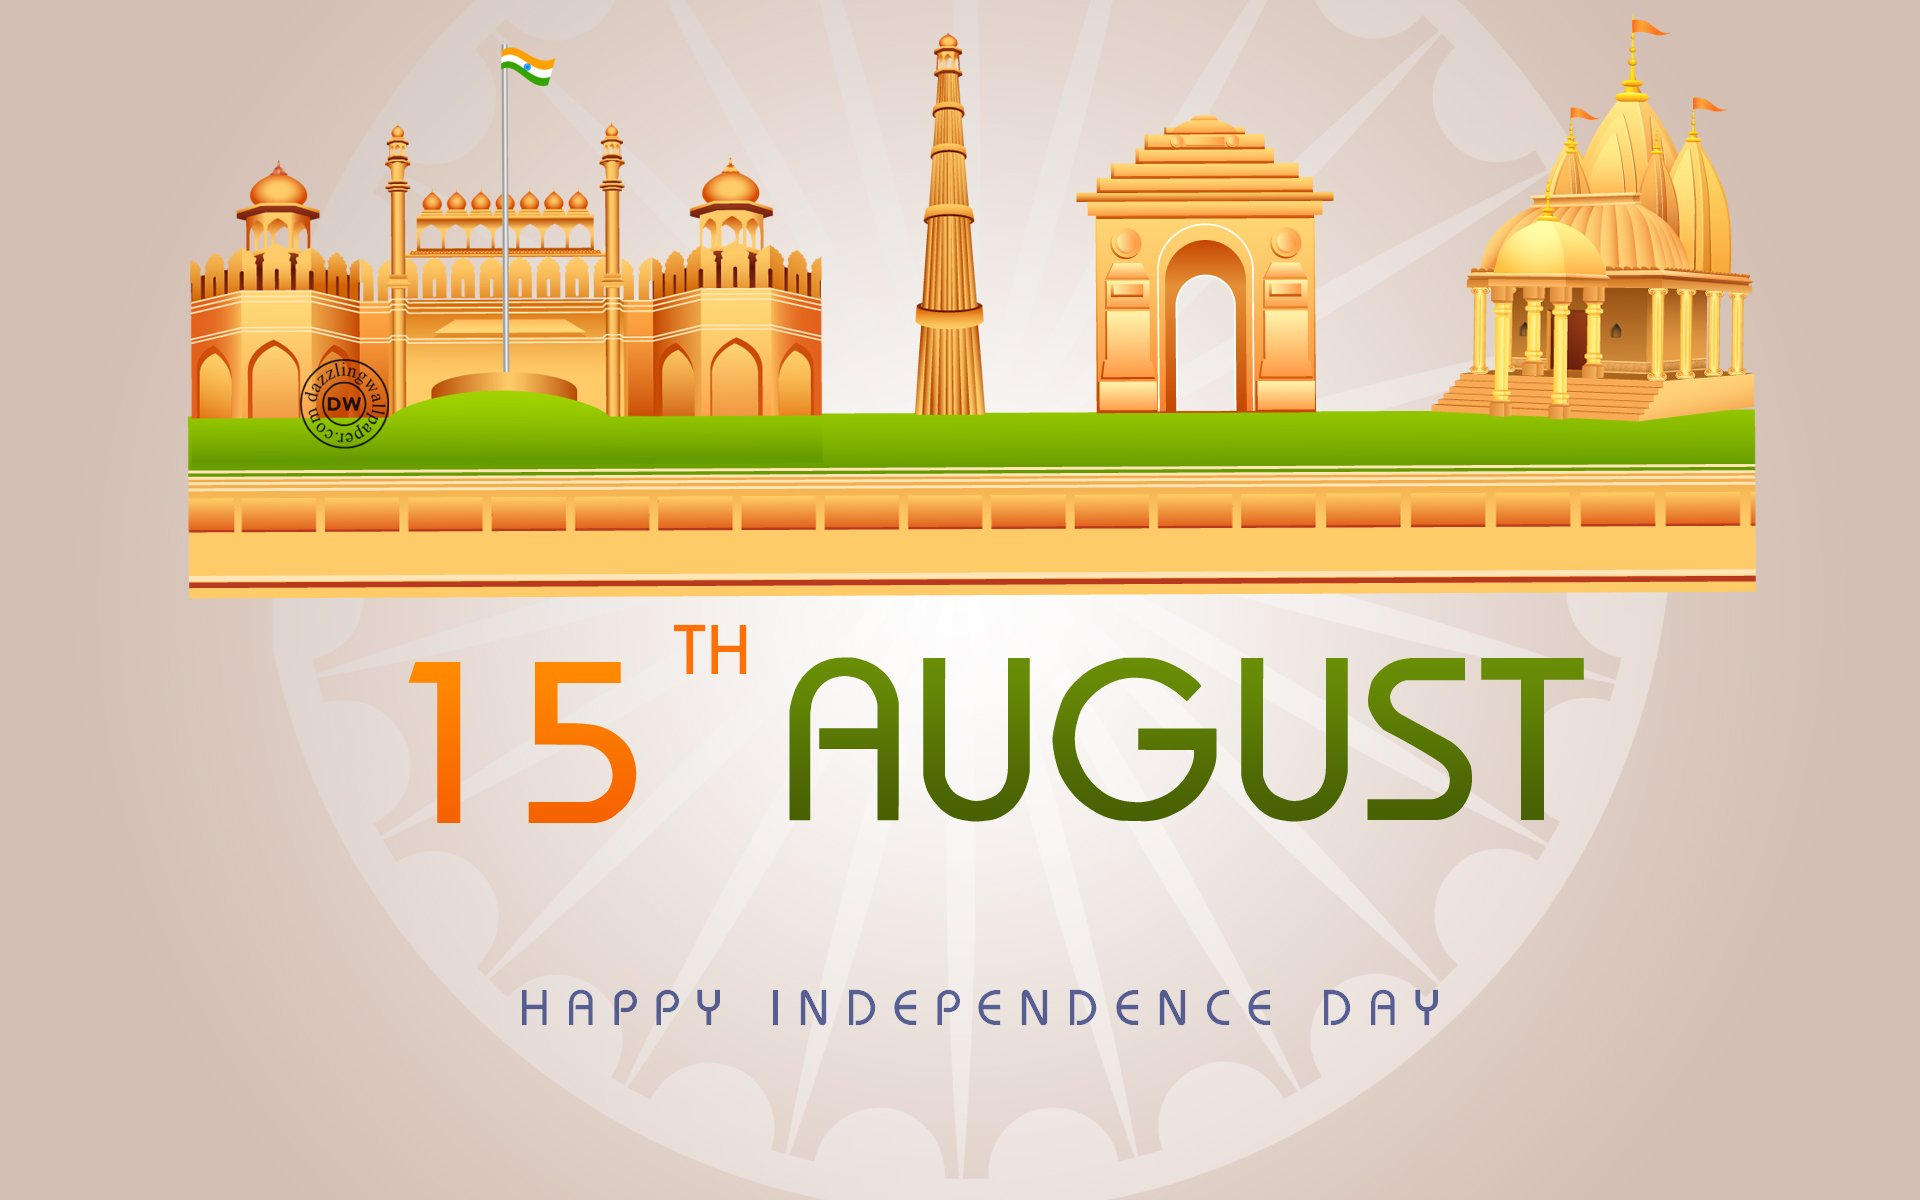 Independence Day August 15 Wallpaper 1920x1200